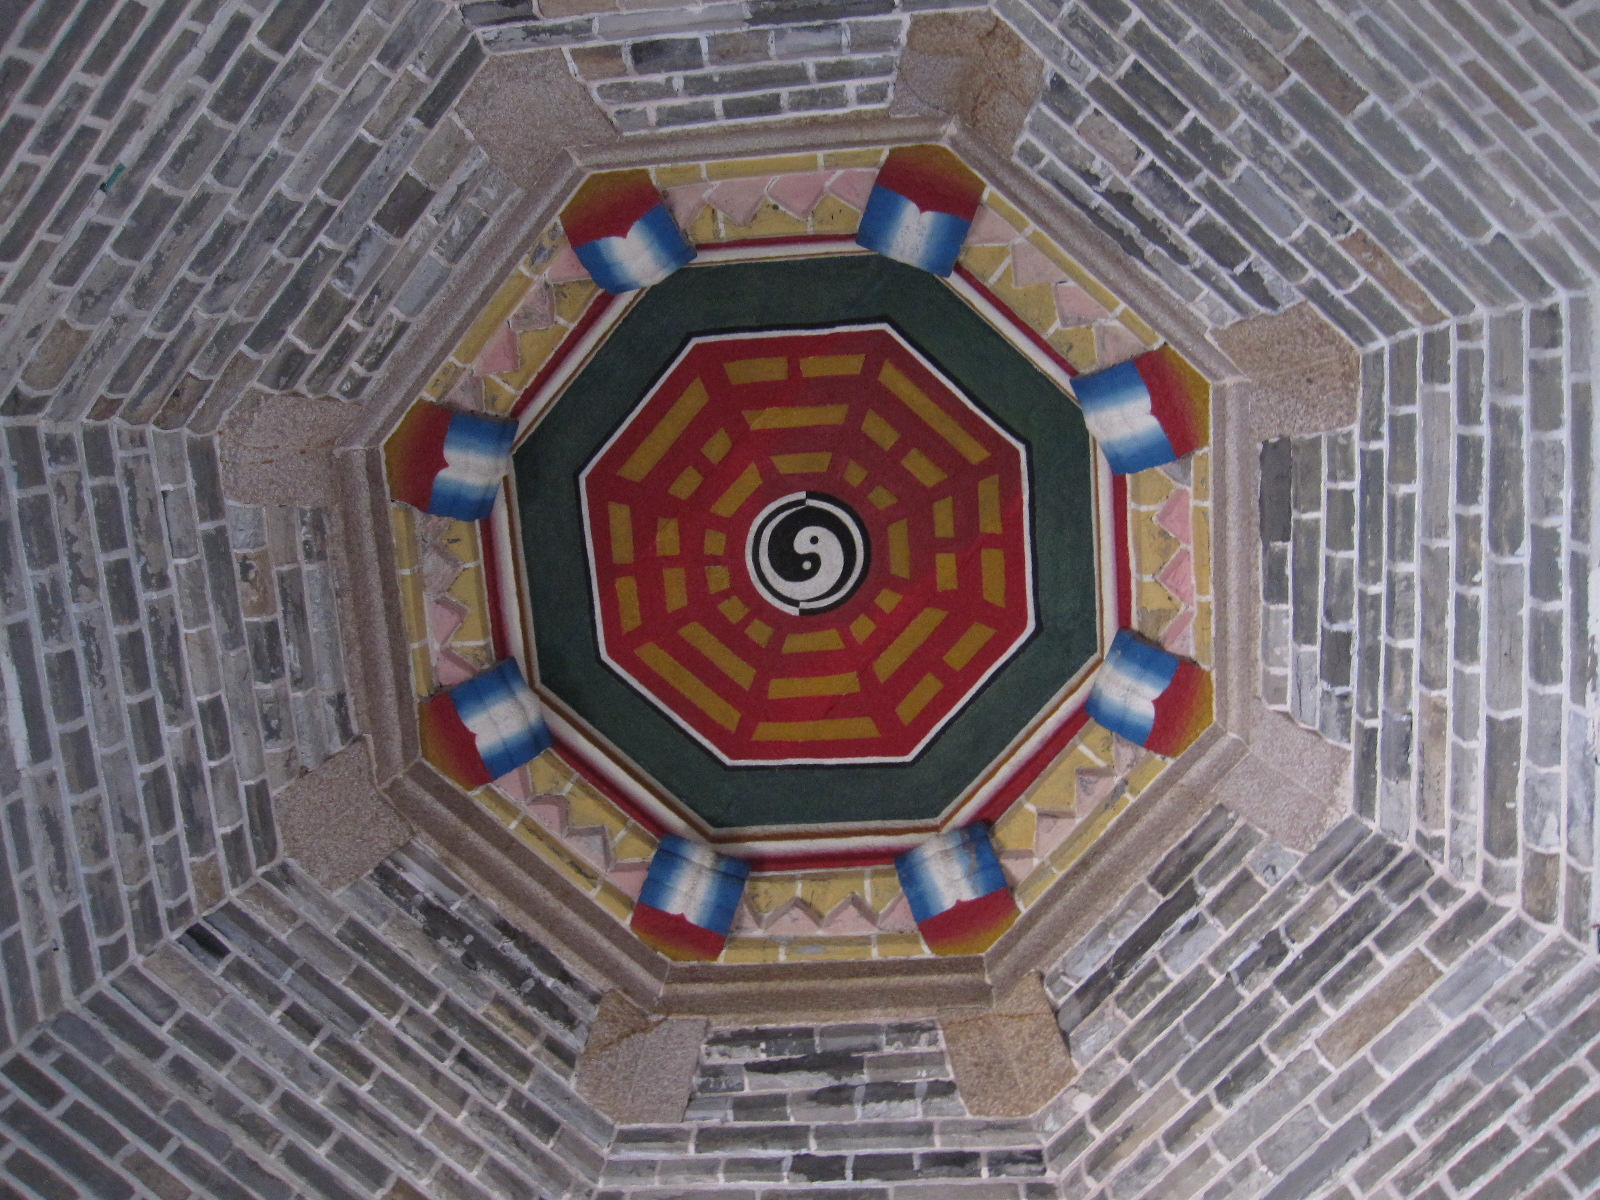 In Taiwan, the map was drawn on the cross beam of the roof in the main hall of temples and houses. (Image: kunwi via flickr CC BY-SA 3.0)